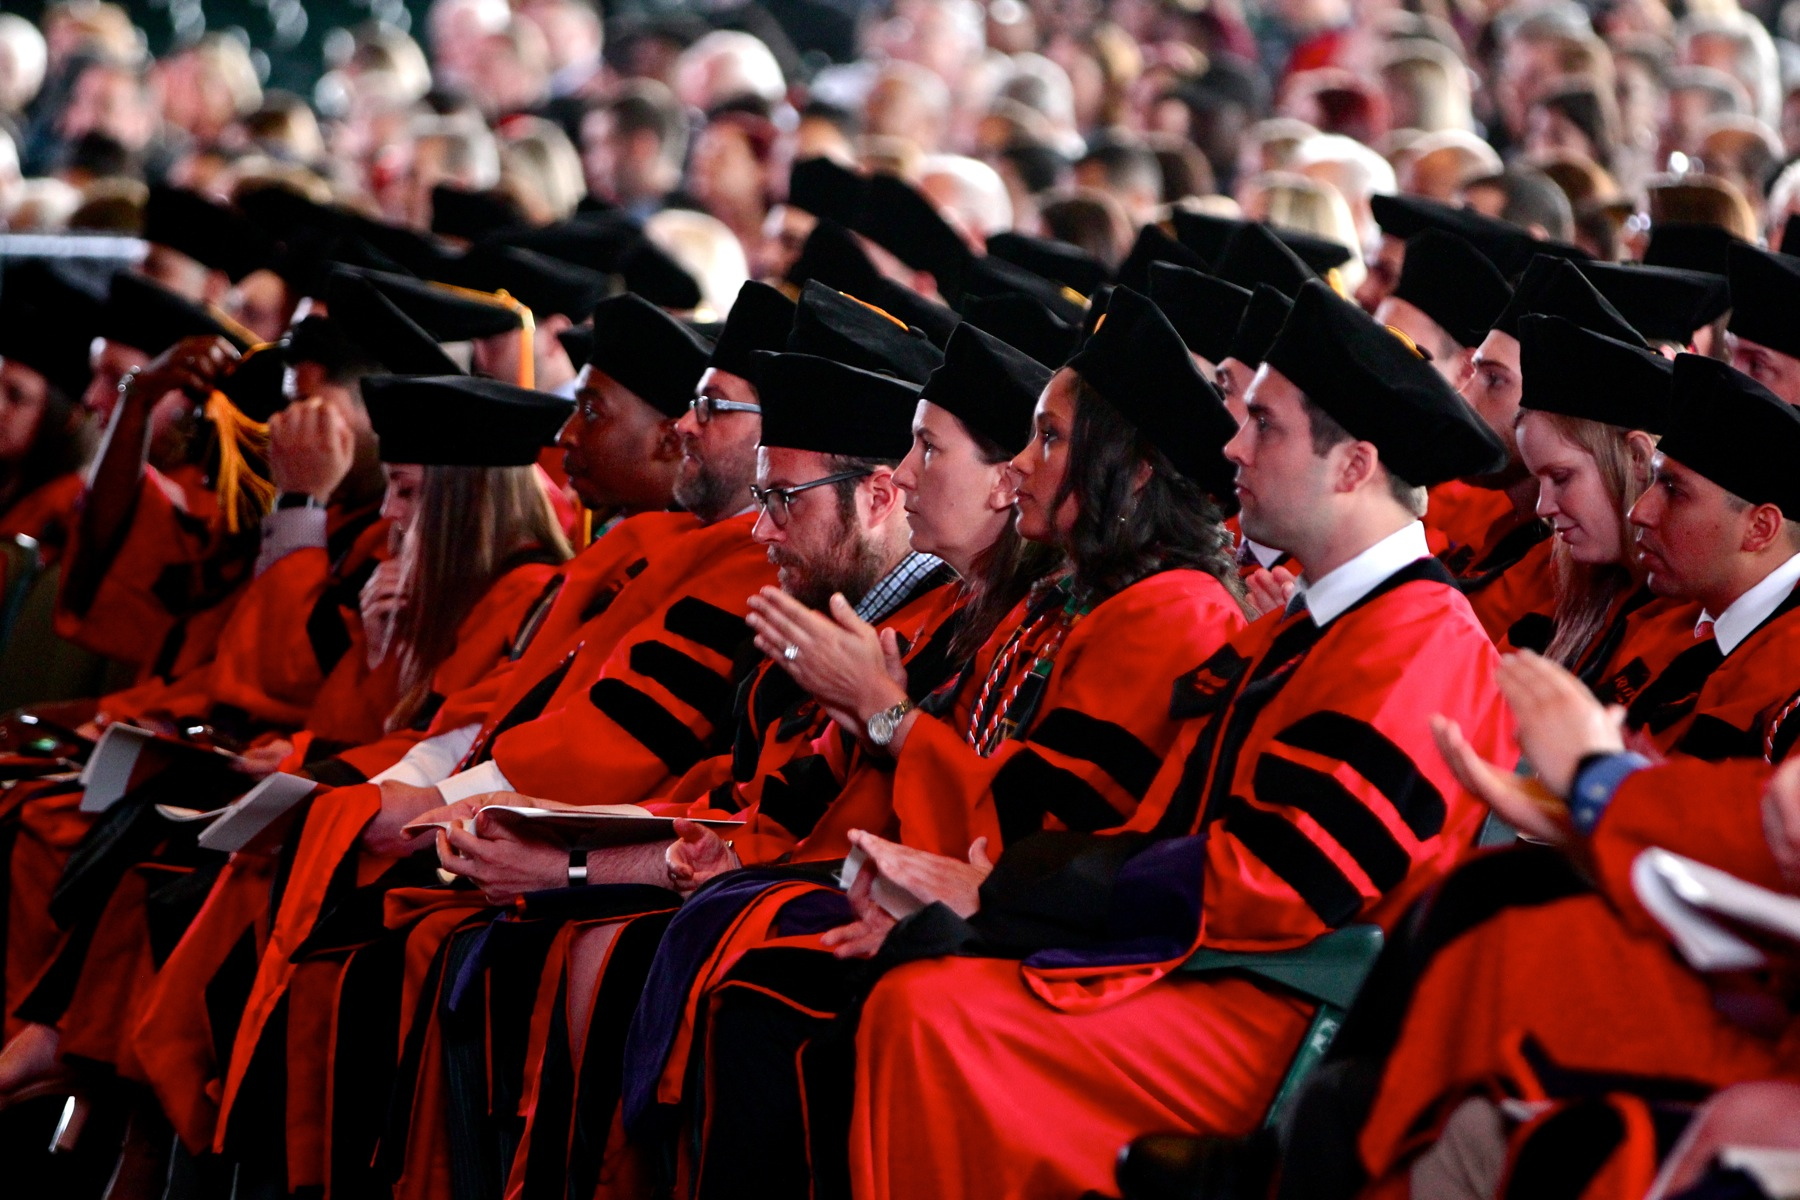 Rutgers Camden law degree candidates applaud keynote speaker Anita Hill curing a commencement ceremony at BB&T Pavillion in Camden.